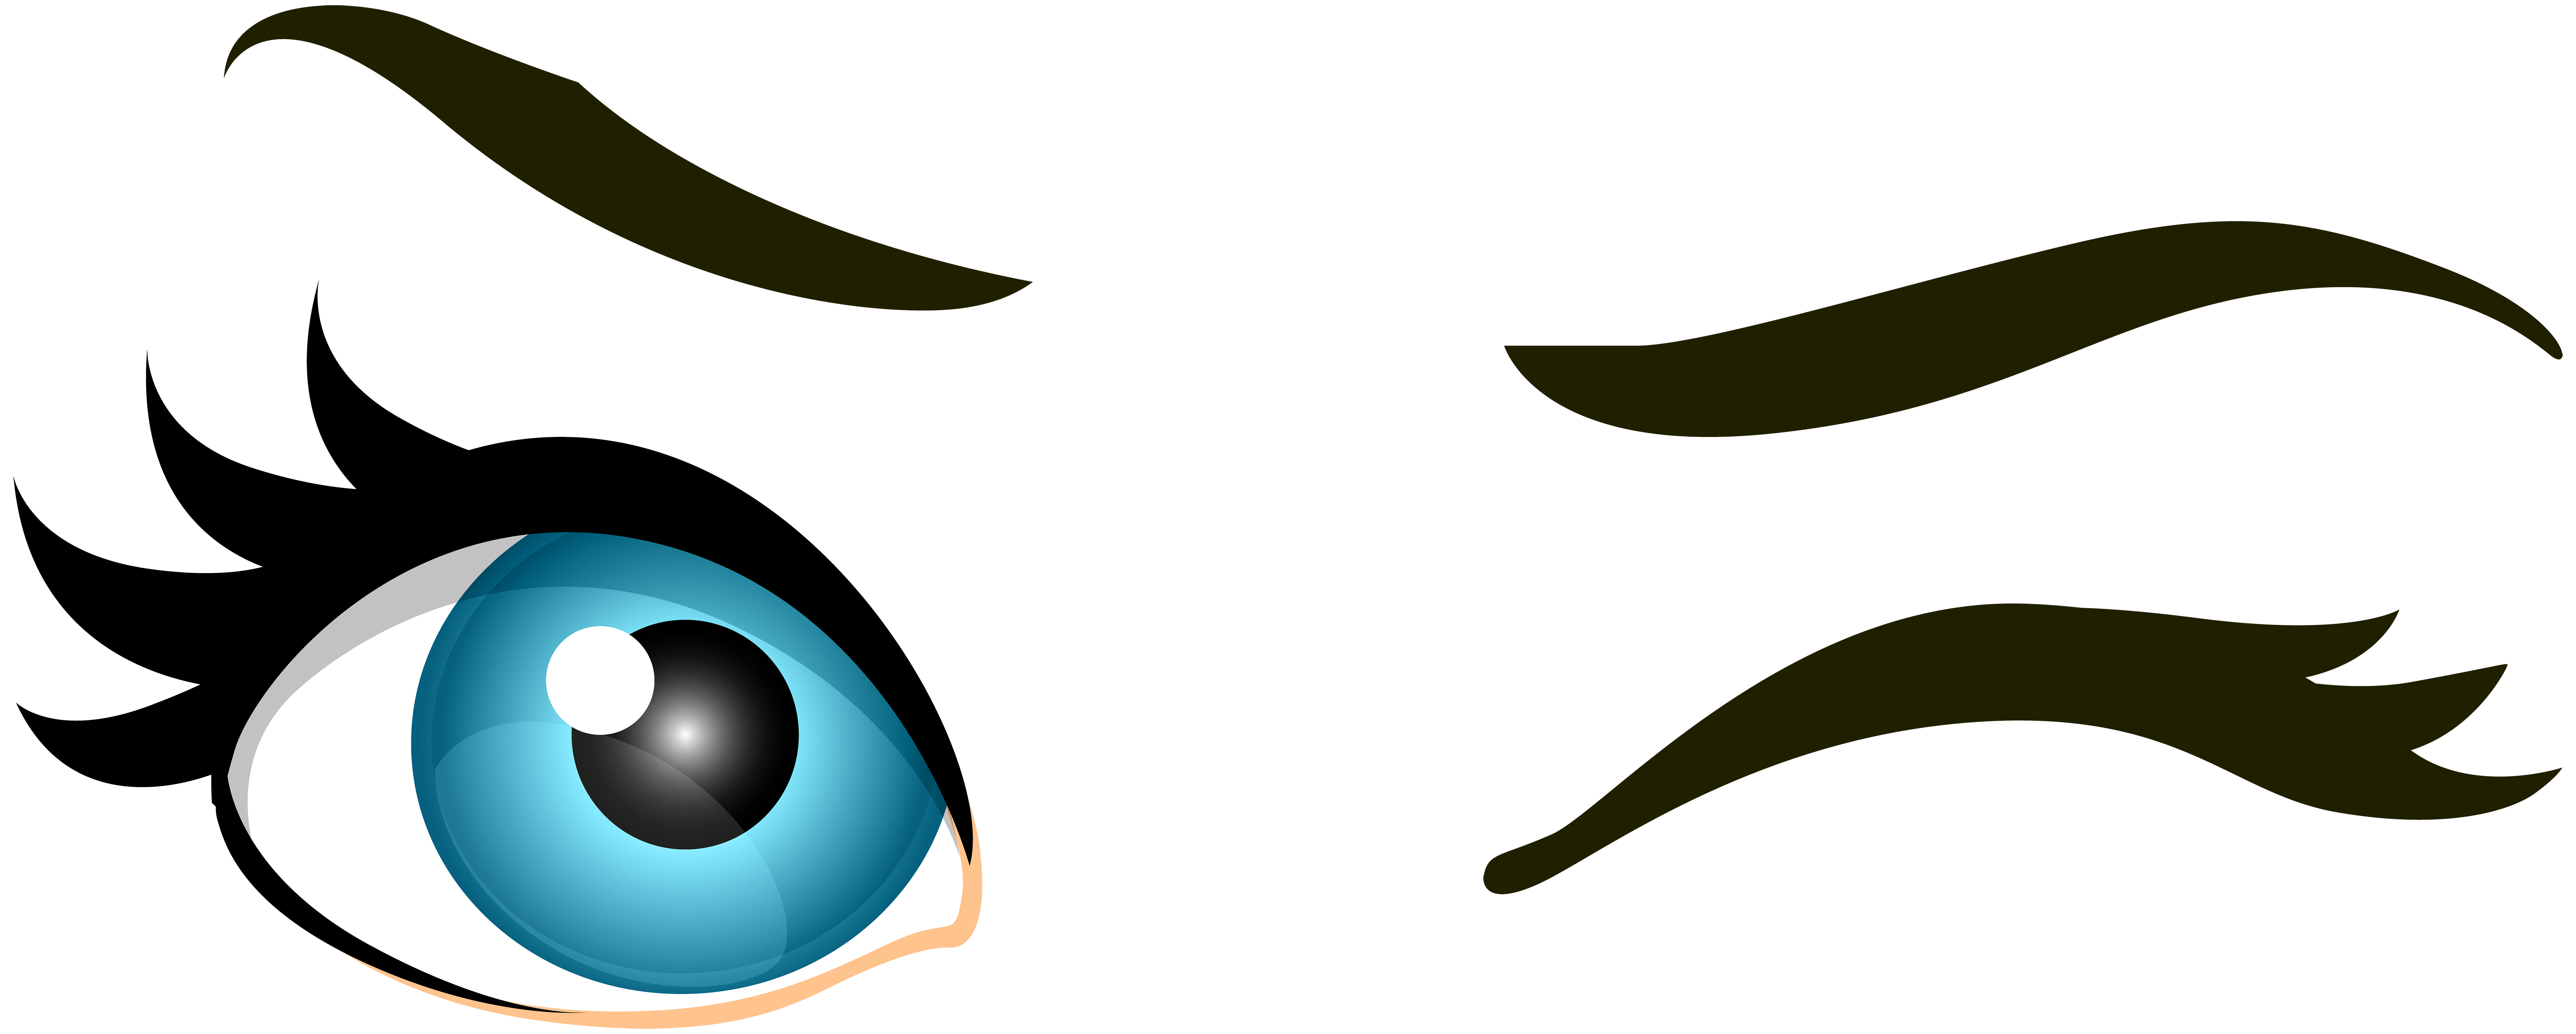 Eyes clipart blue.  collection of winking